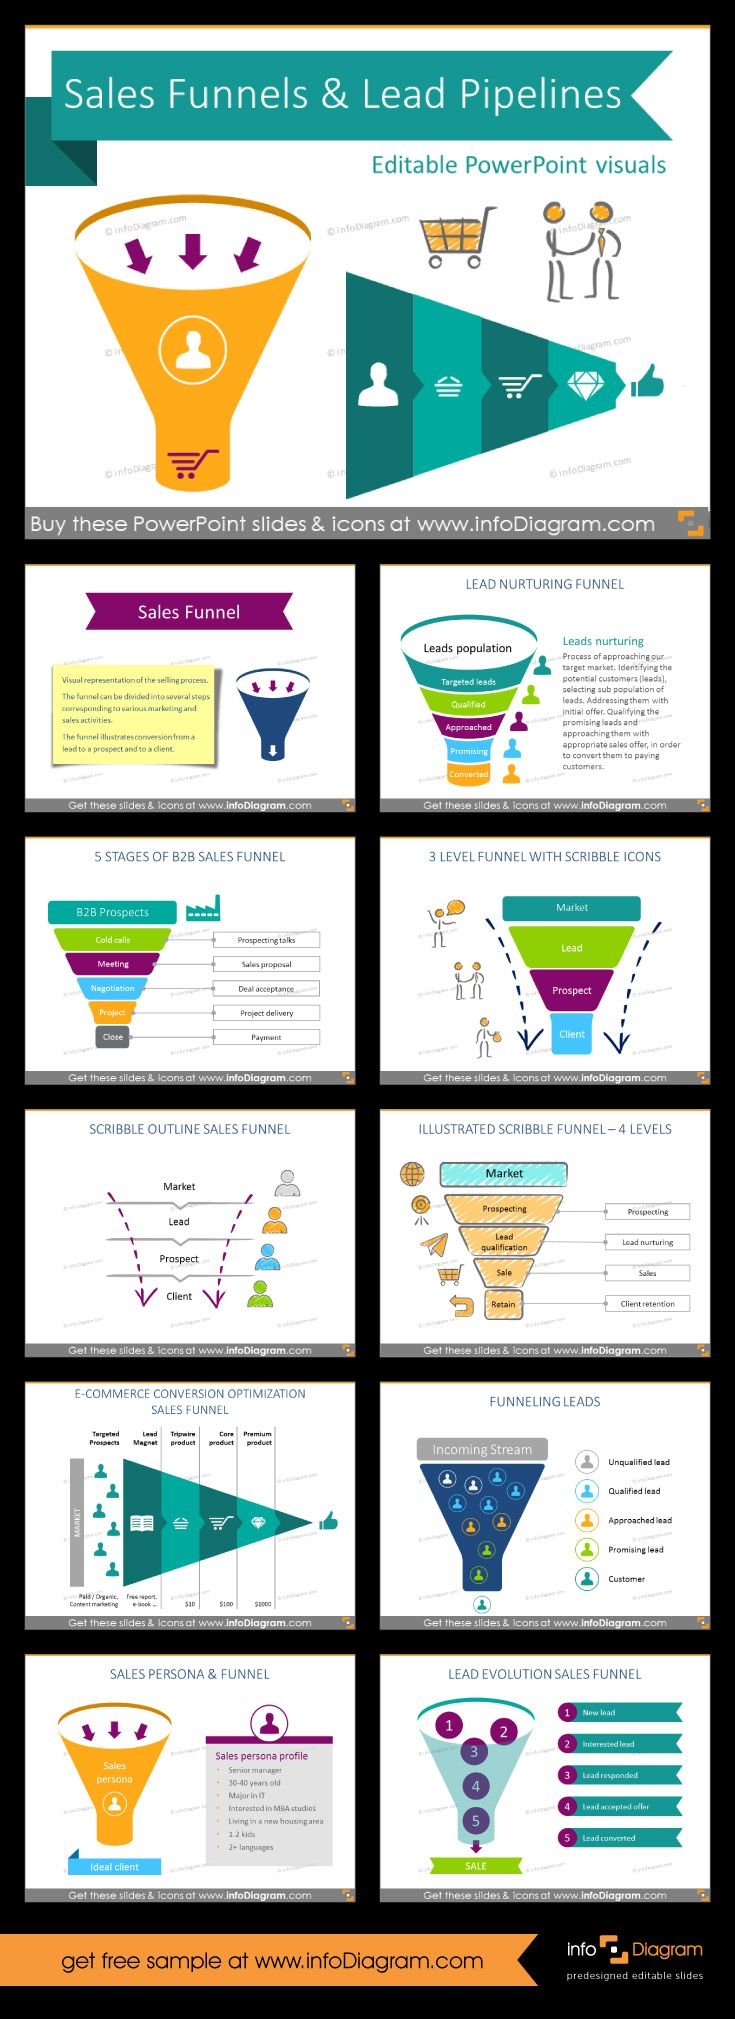 marketing pipeline template - sales funnel diagrams and pipeline process charts ppt